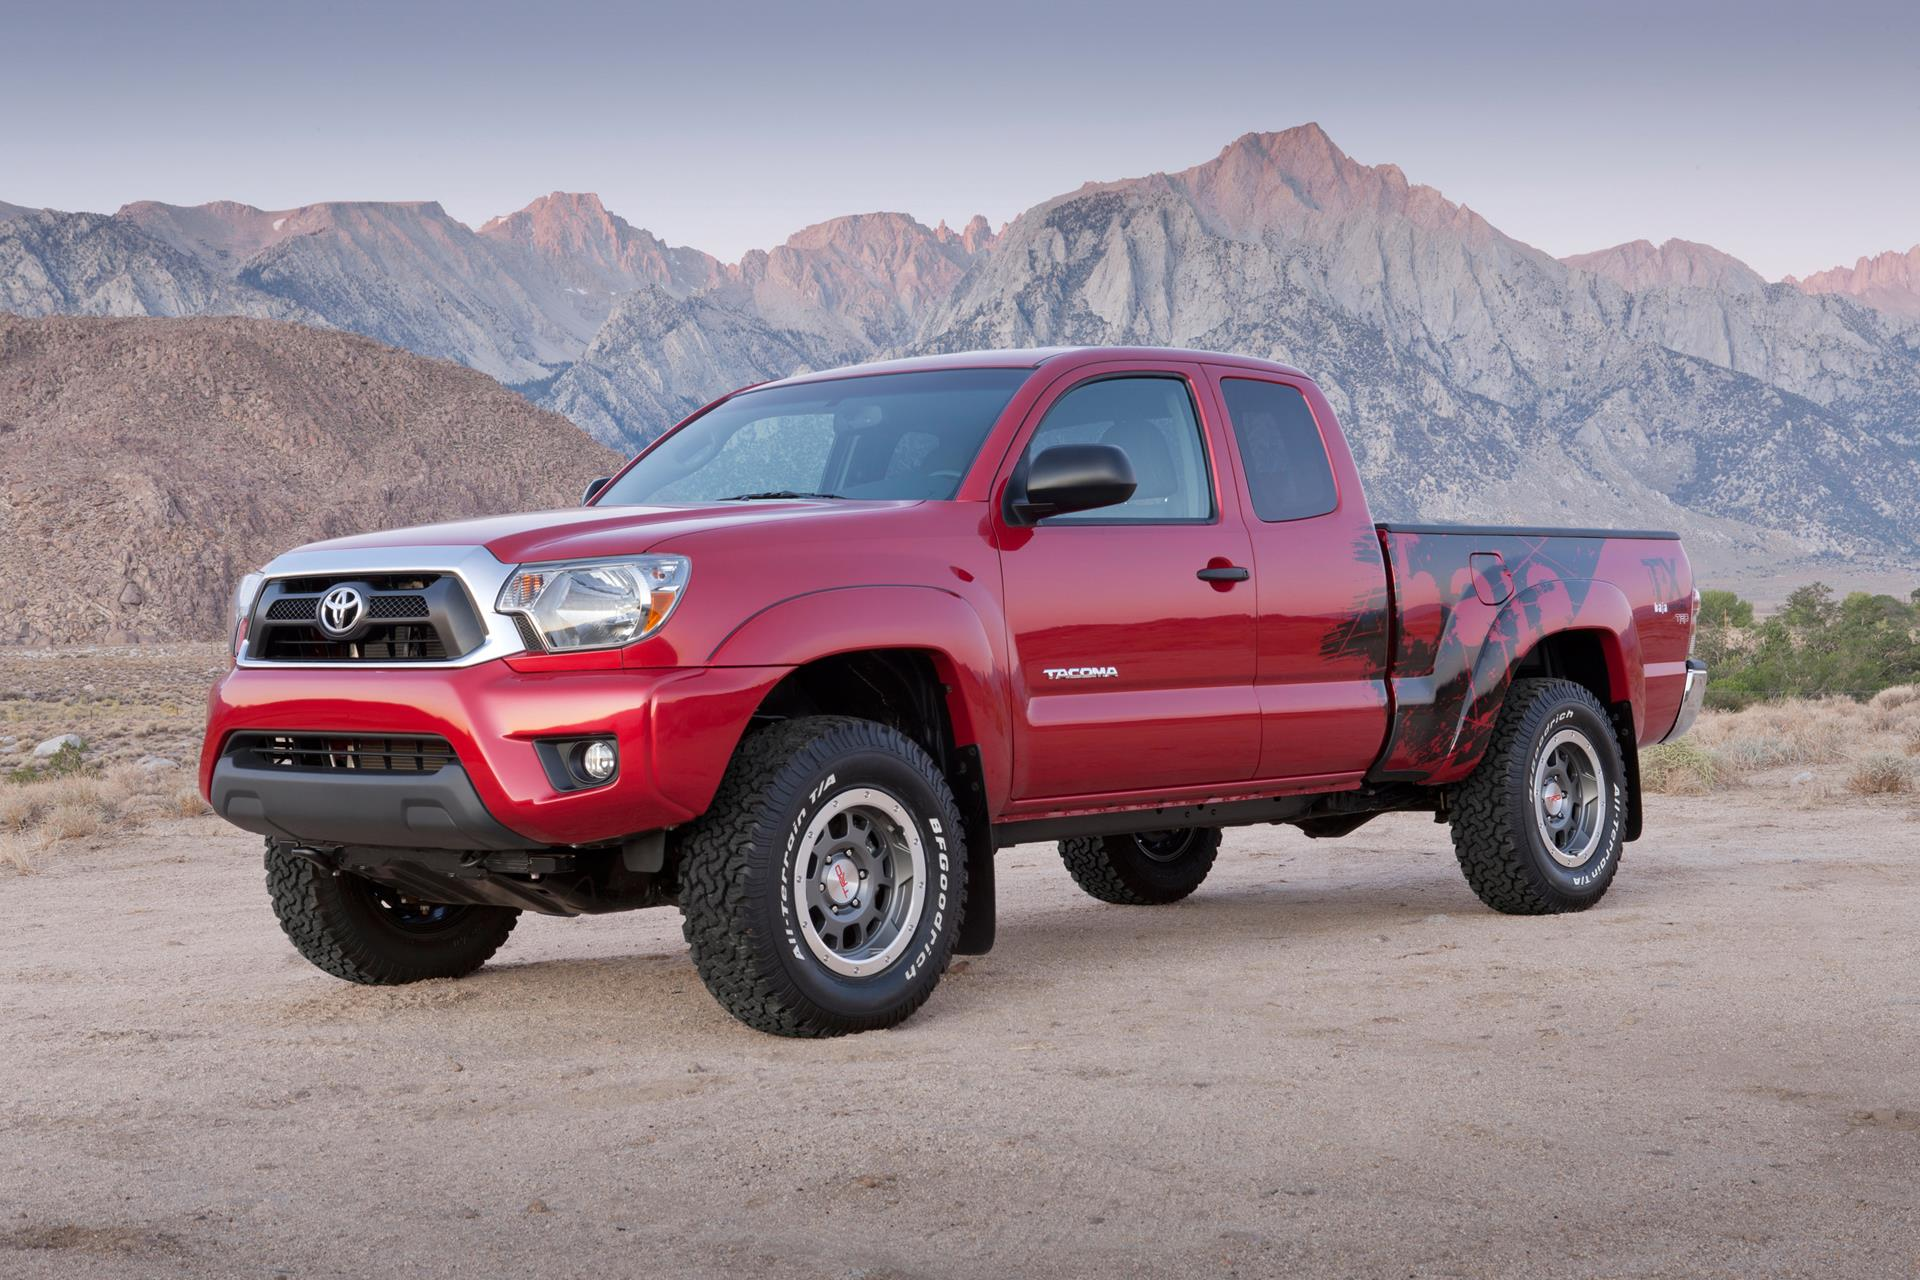 2007 Toyota Tacoma Access Cab News >> 2015 Toyota Tacoma News and Information - conceptcarz.com